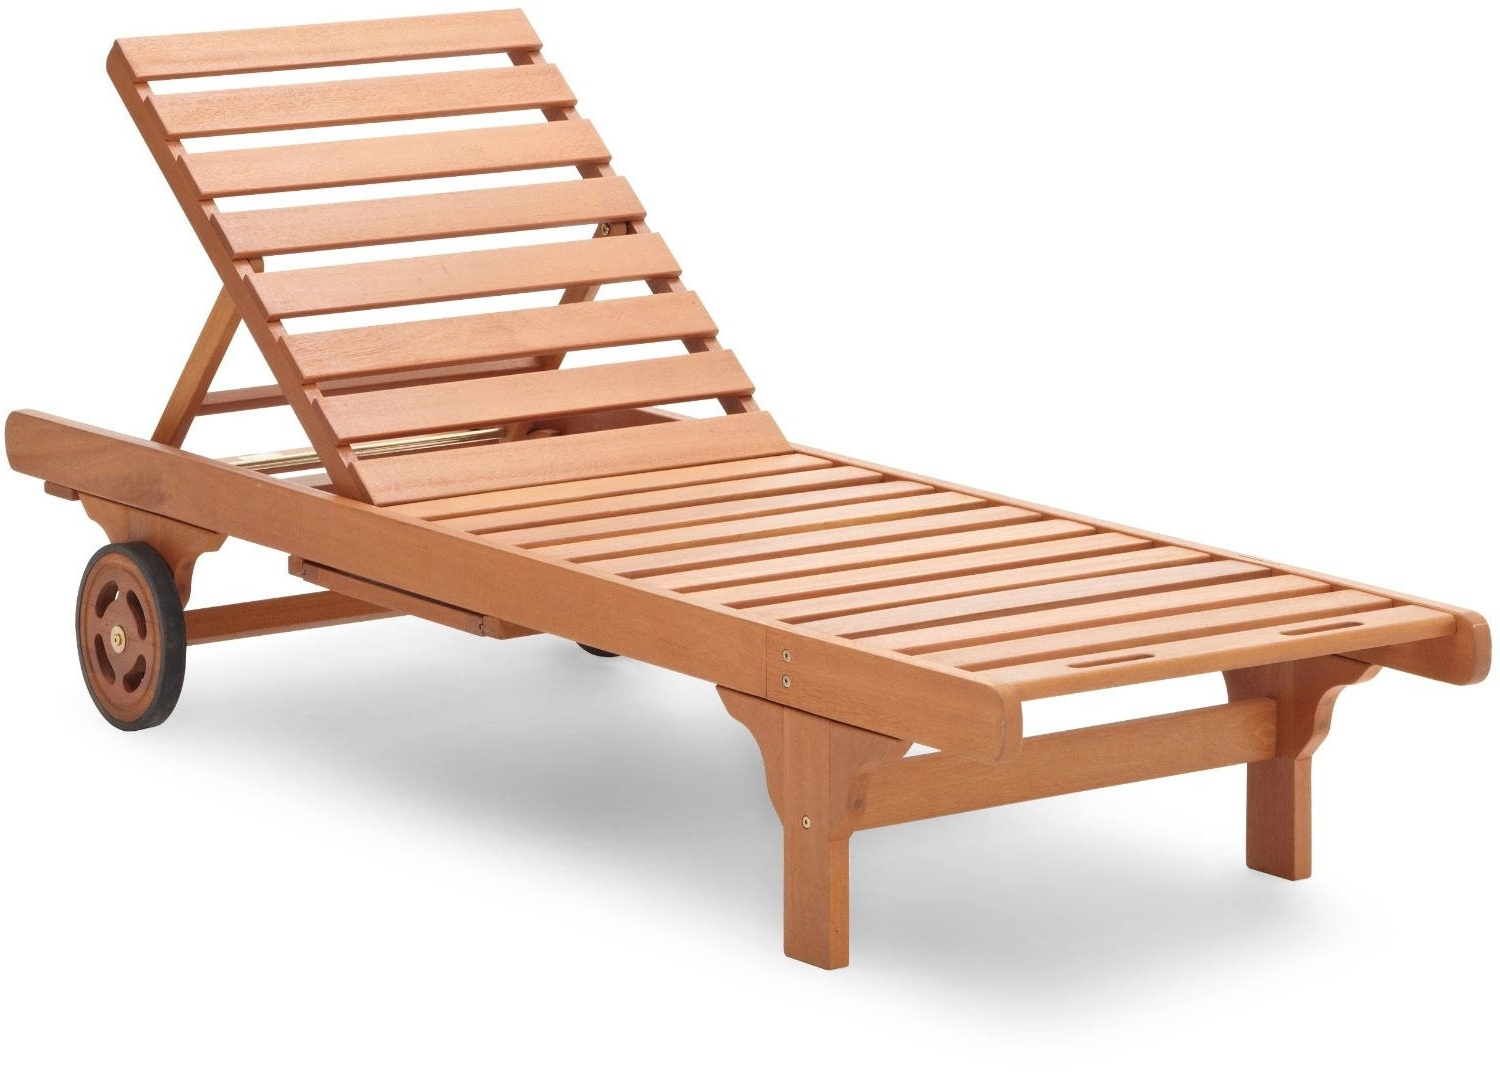 Wood Chaise Lounge Chairs With Popular Wood Chaise Lounge Chairs • Lounge Chairs Ideas (View 14 of 15)